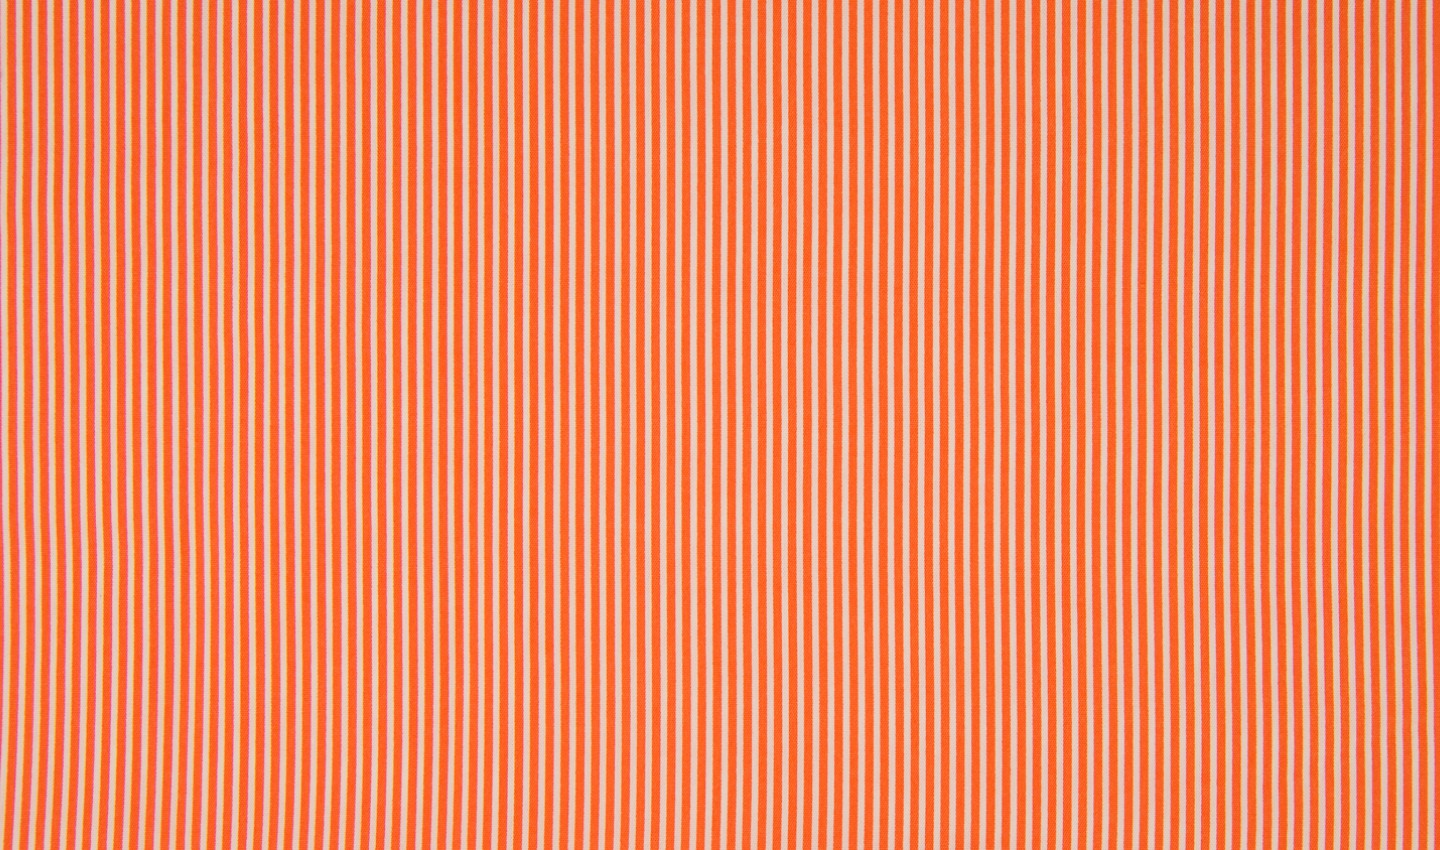 Minimals Stripes - orange-weiss - Baumwollprint